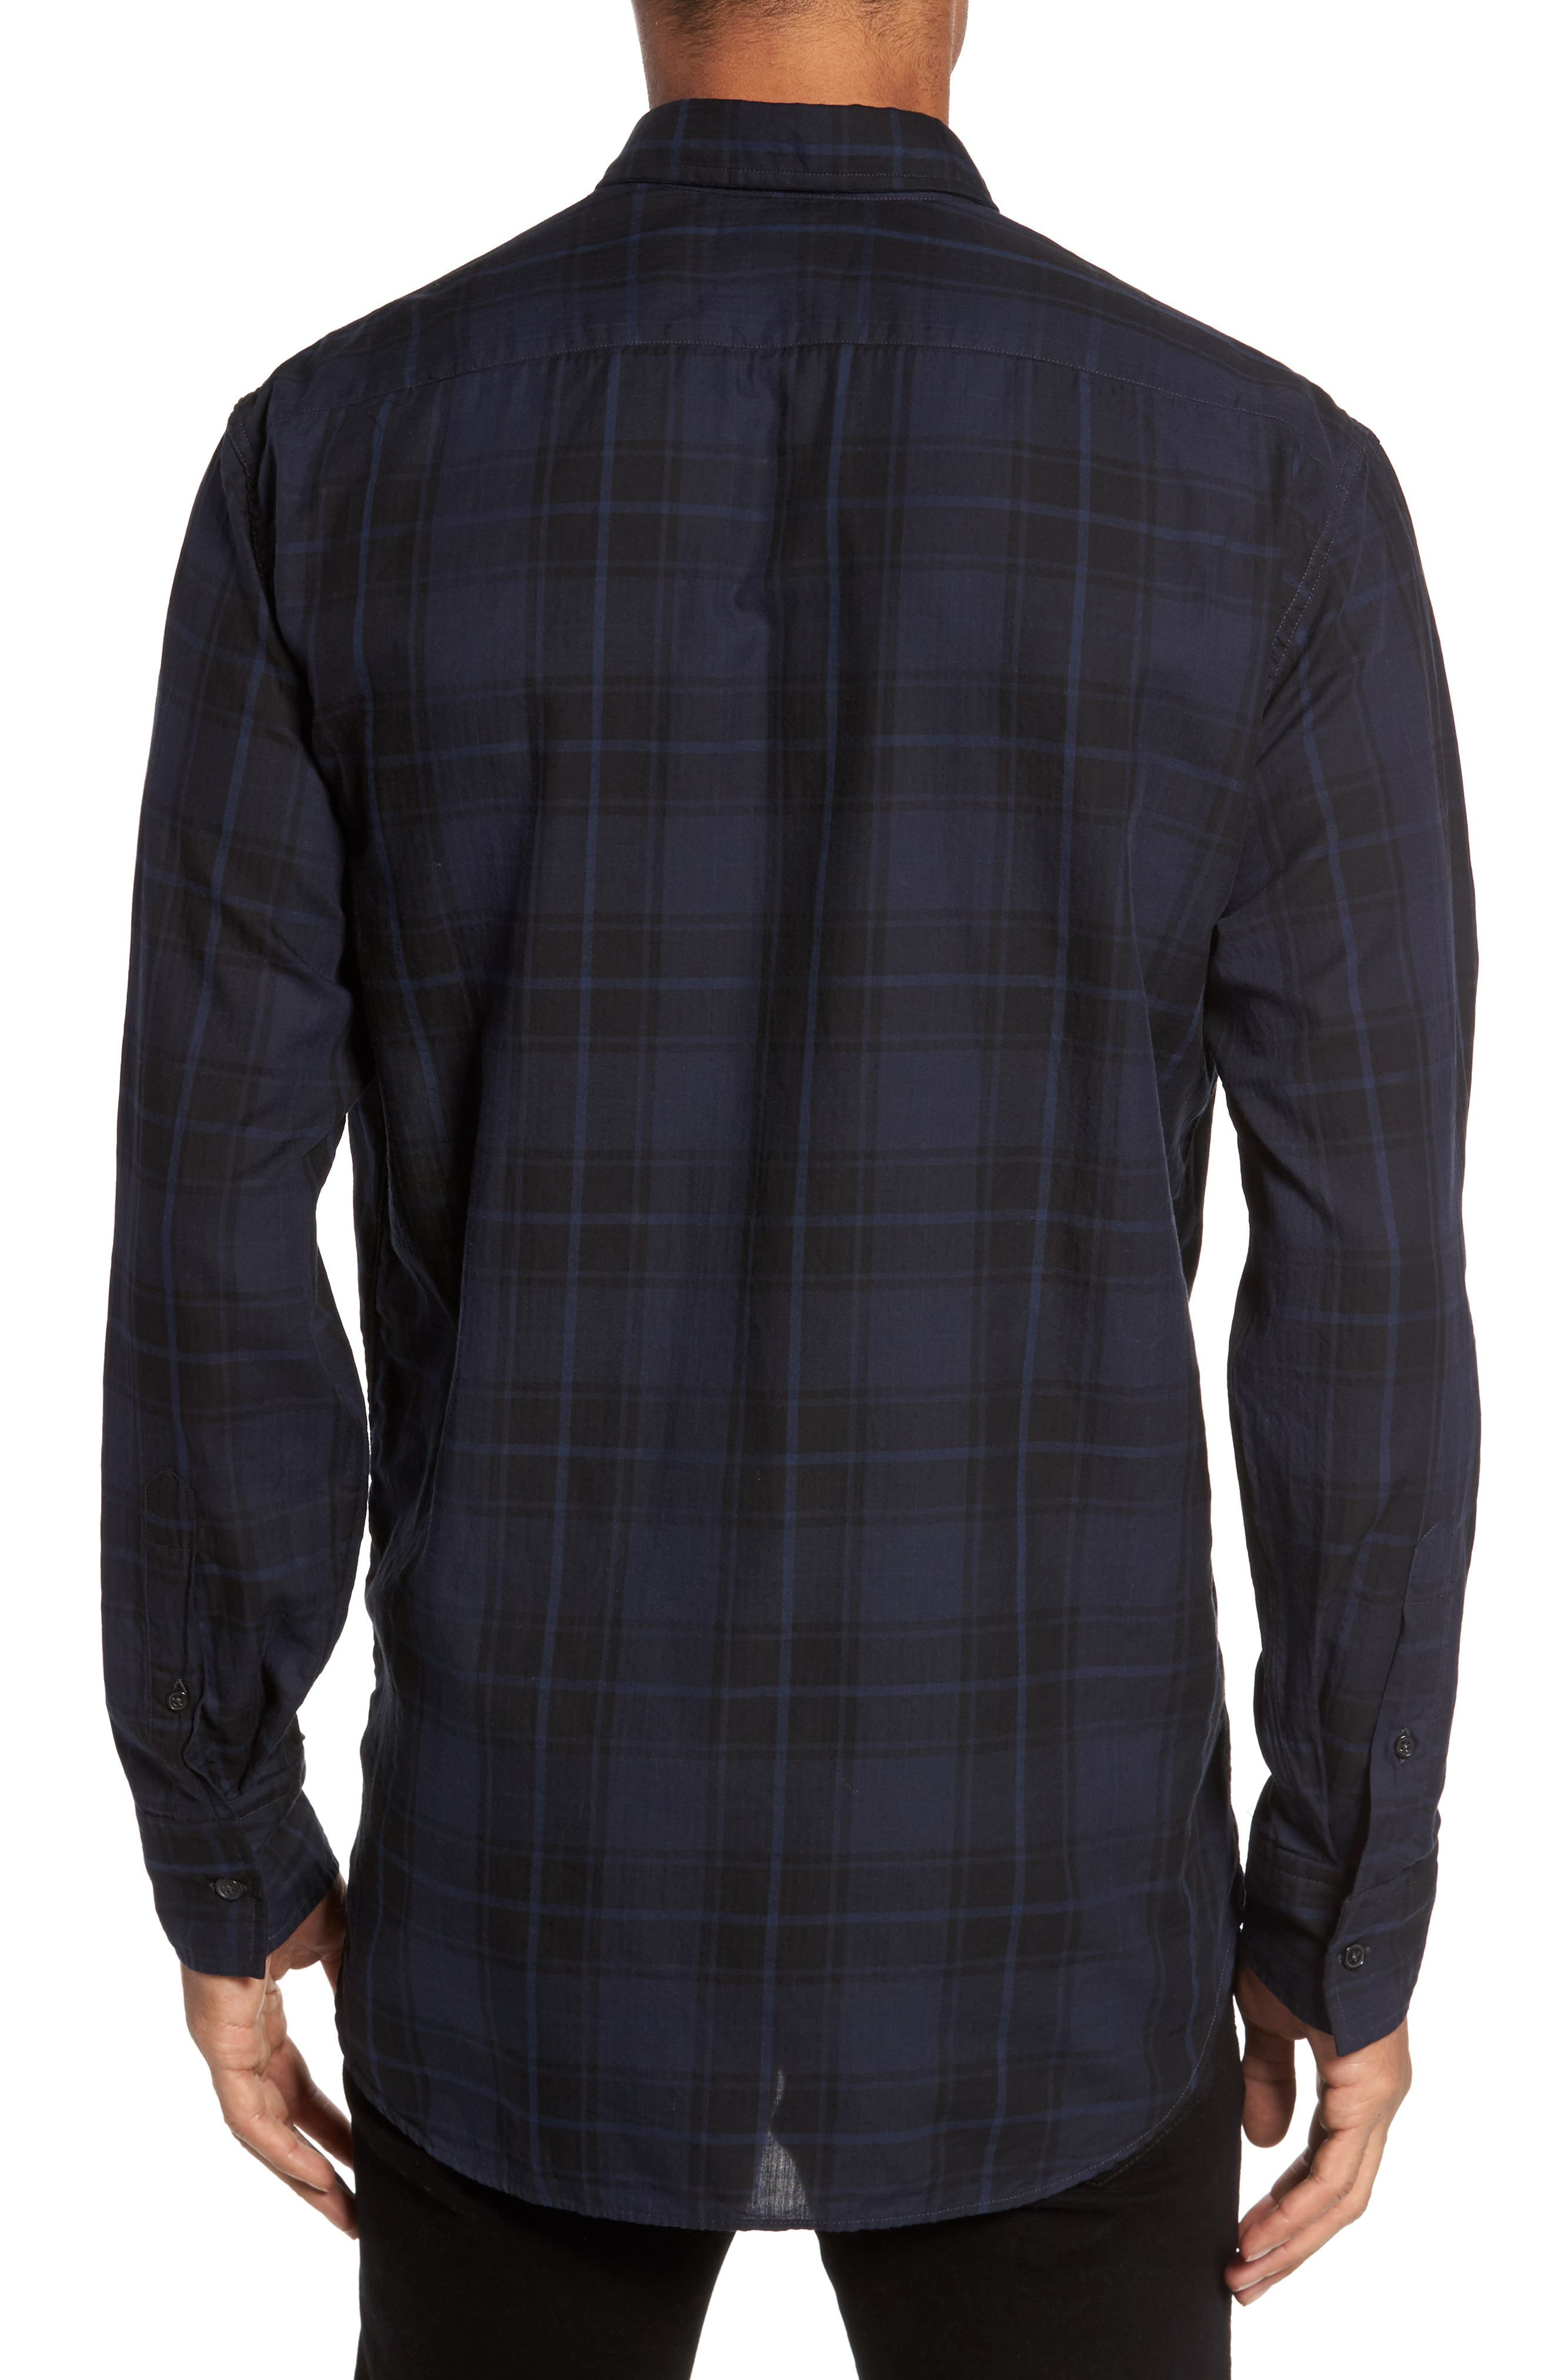 Wallace Slim Fit Sport Shirt,                             Alternate thumbnail 2, color,                             Navy/ Black